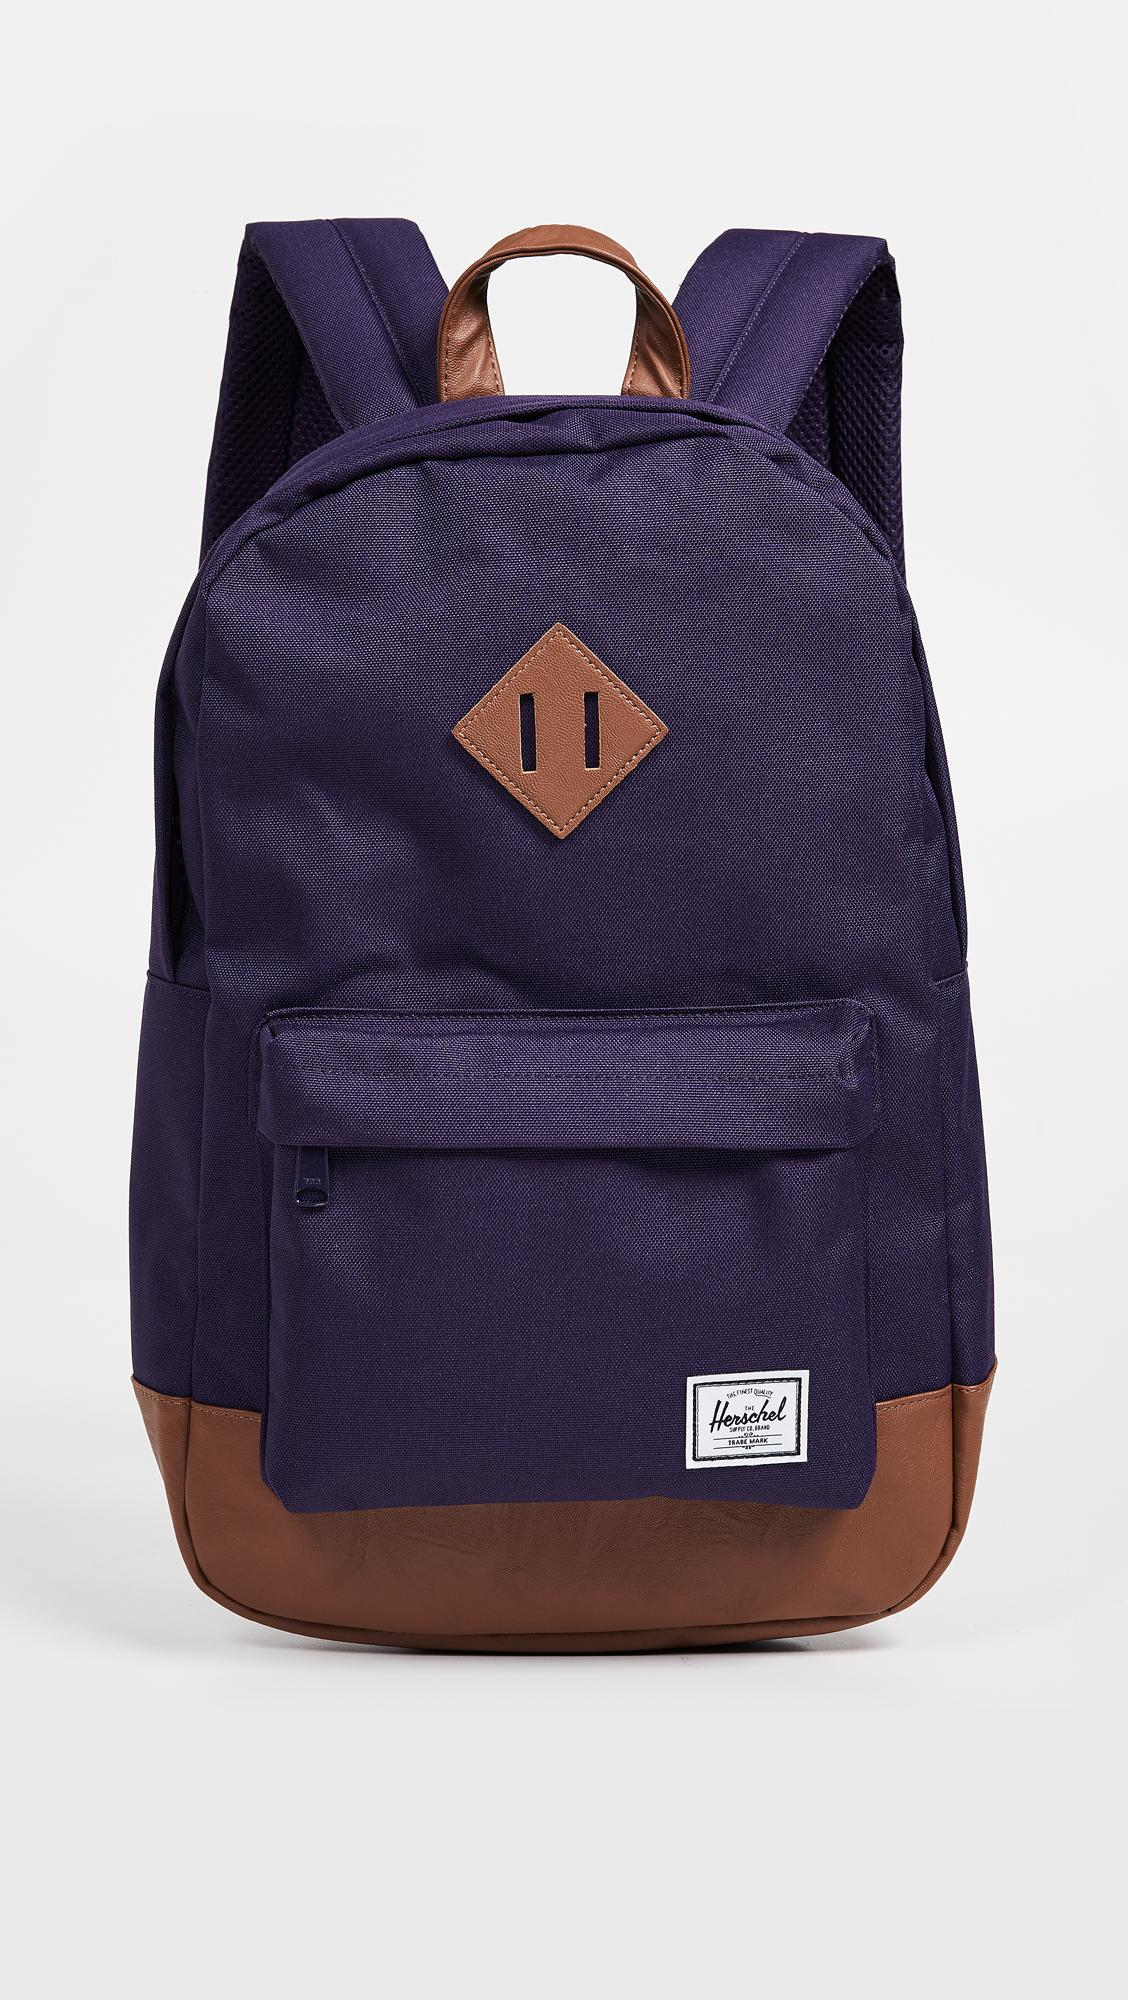 72560d78e80 Herschel Supply Co. Heritage Mid Volume Backpack in Purple - Save ...